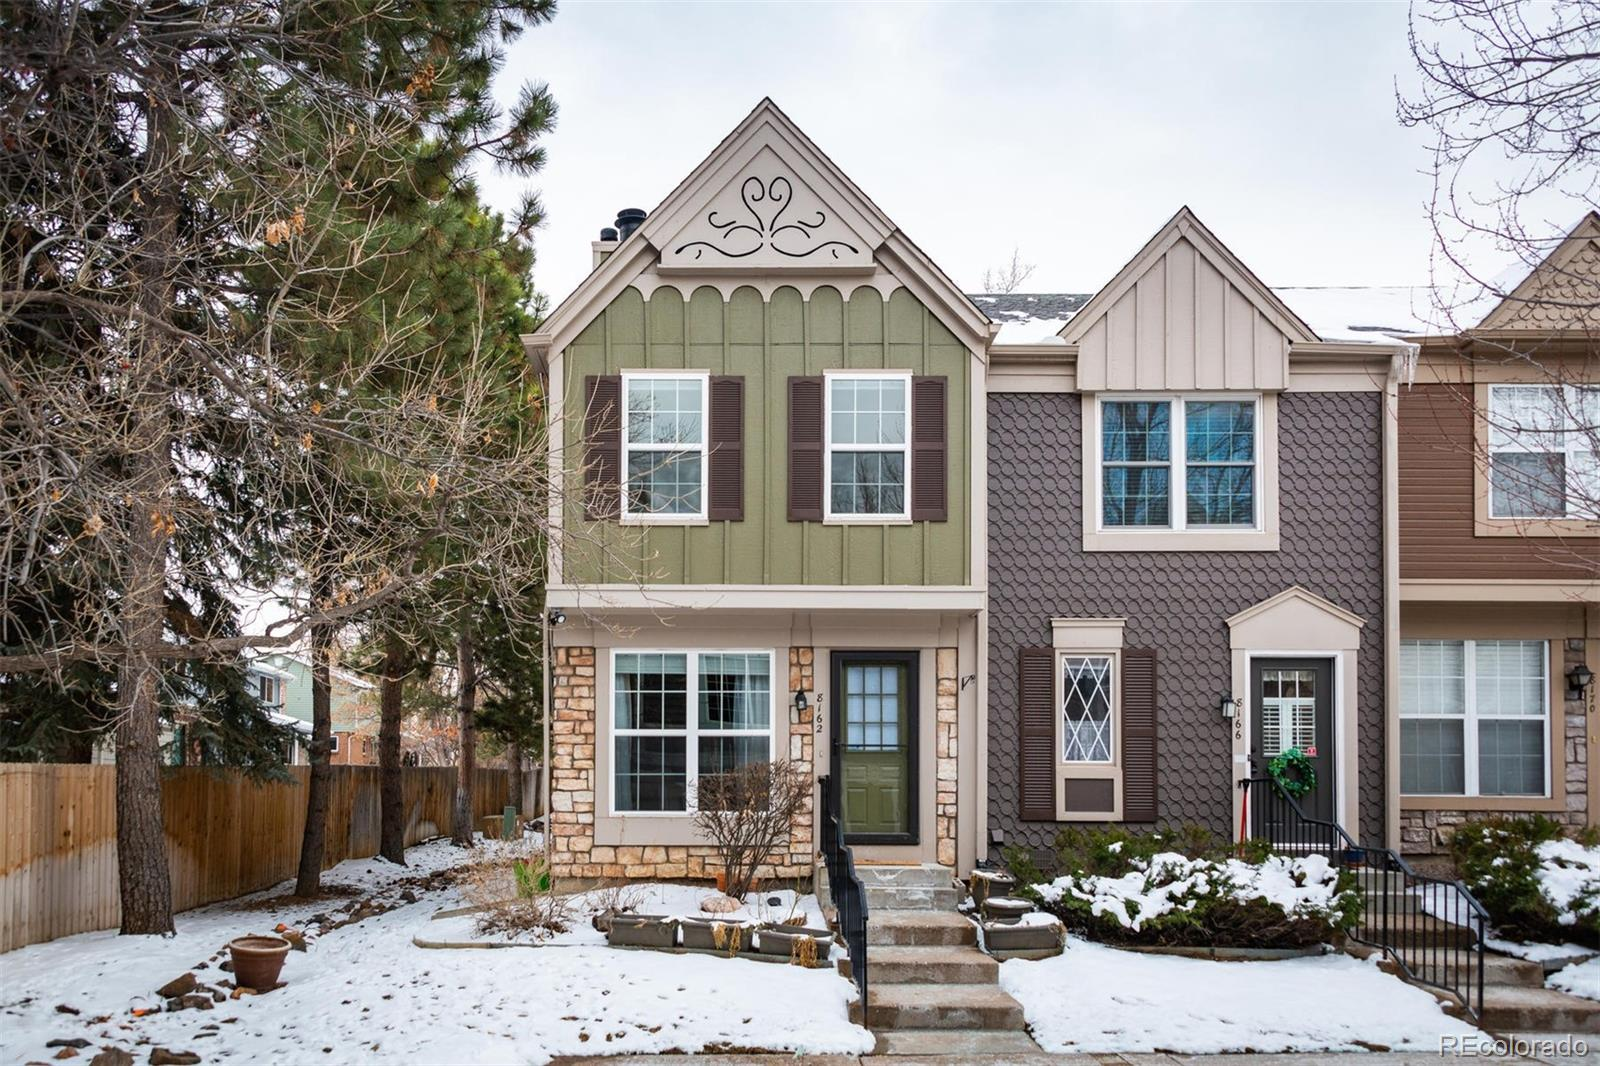 MLS# 9090000 - 1 - 8162 S Fillmore Way, Centennial, CO 80122